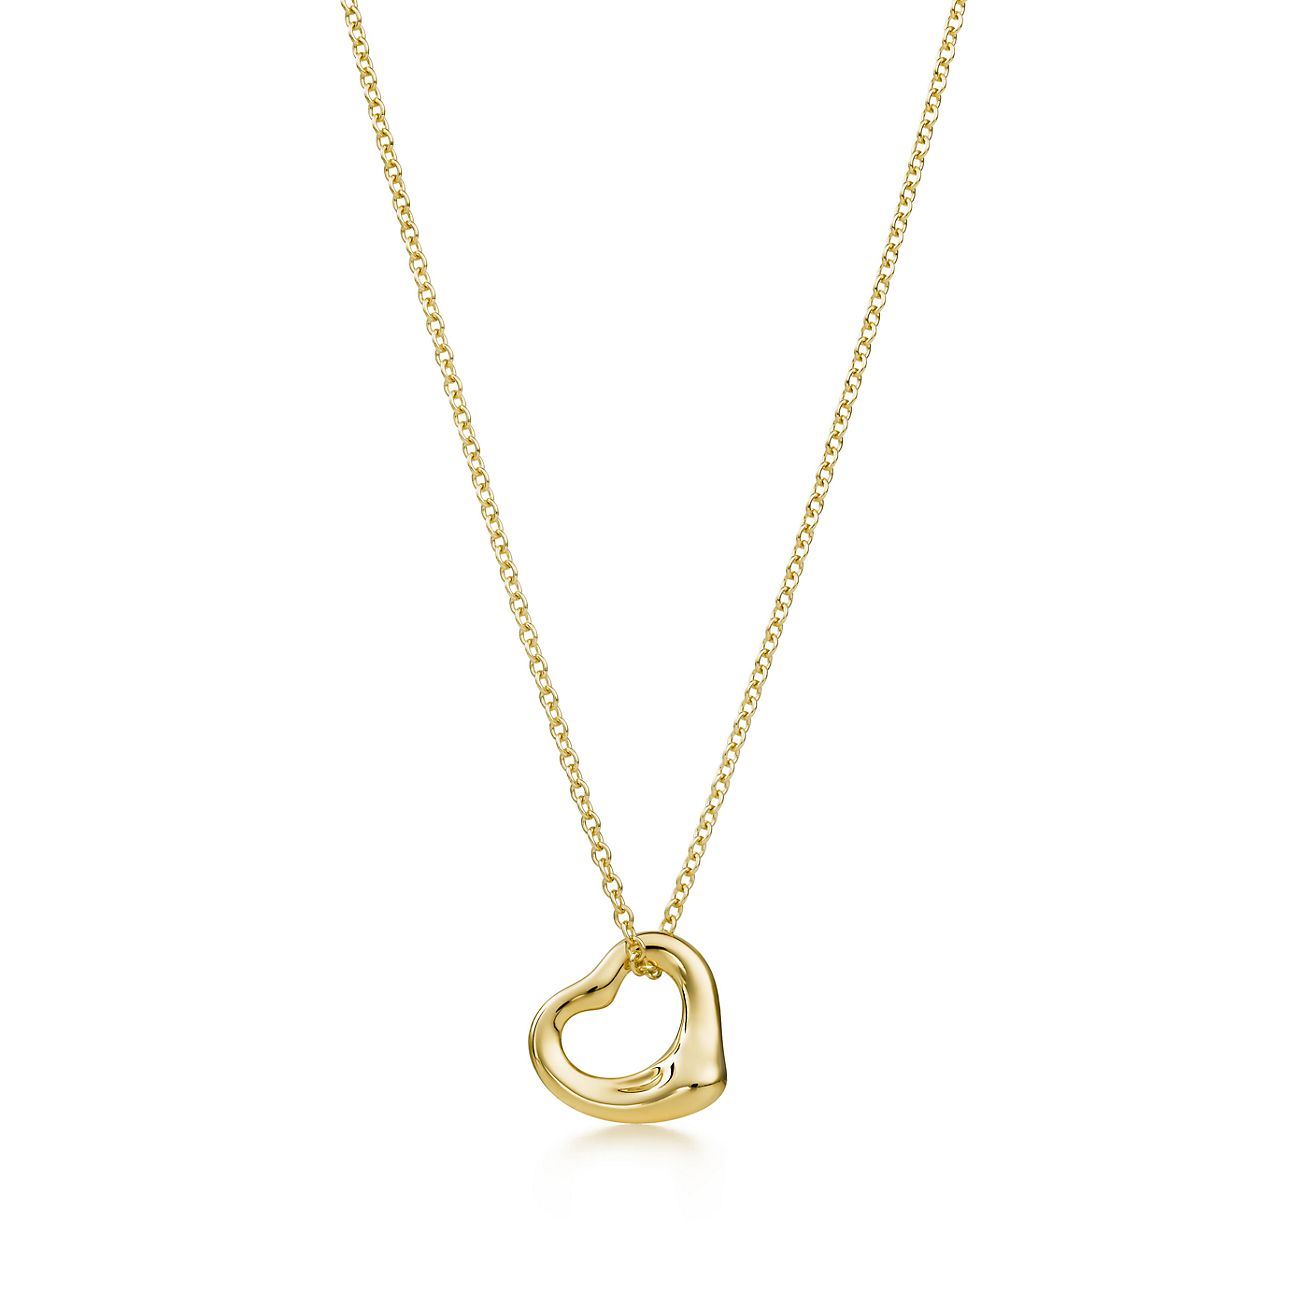 meaning pendant necklace gold open heart the inscribed